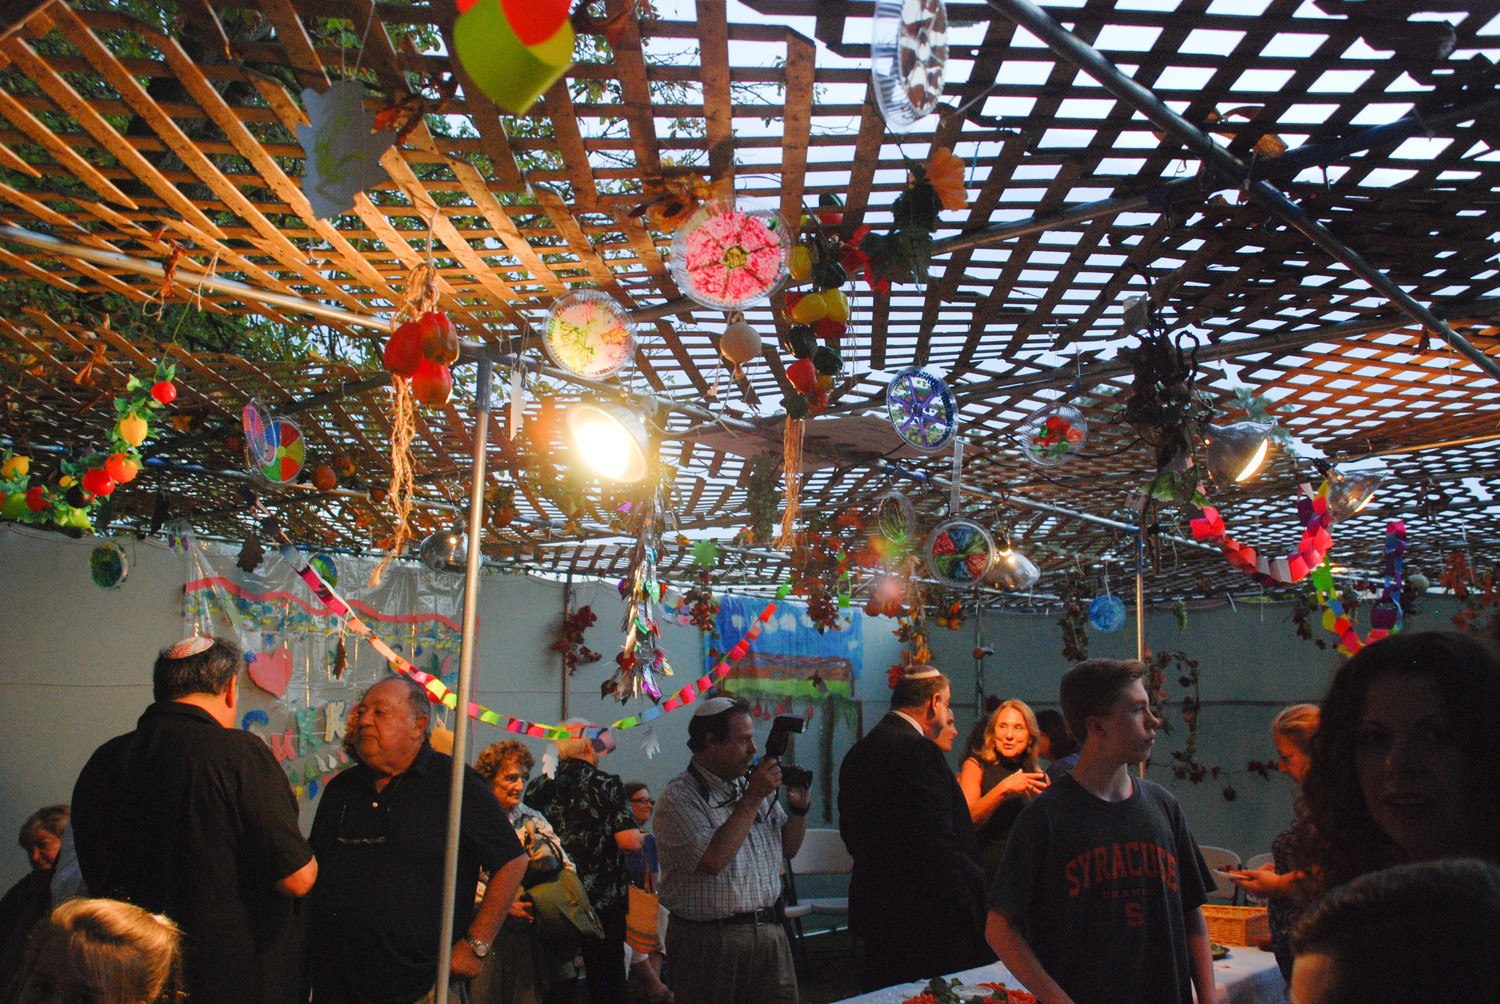 The Sukkah's ceiling was decorated with colorful art projects from the Temple's Hebrew school students.